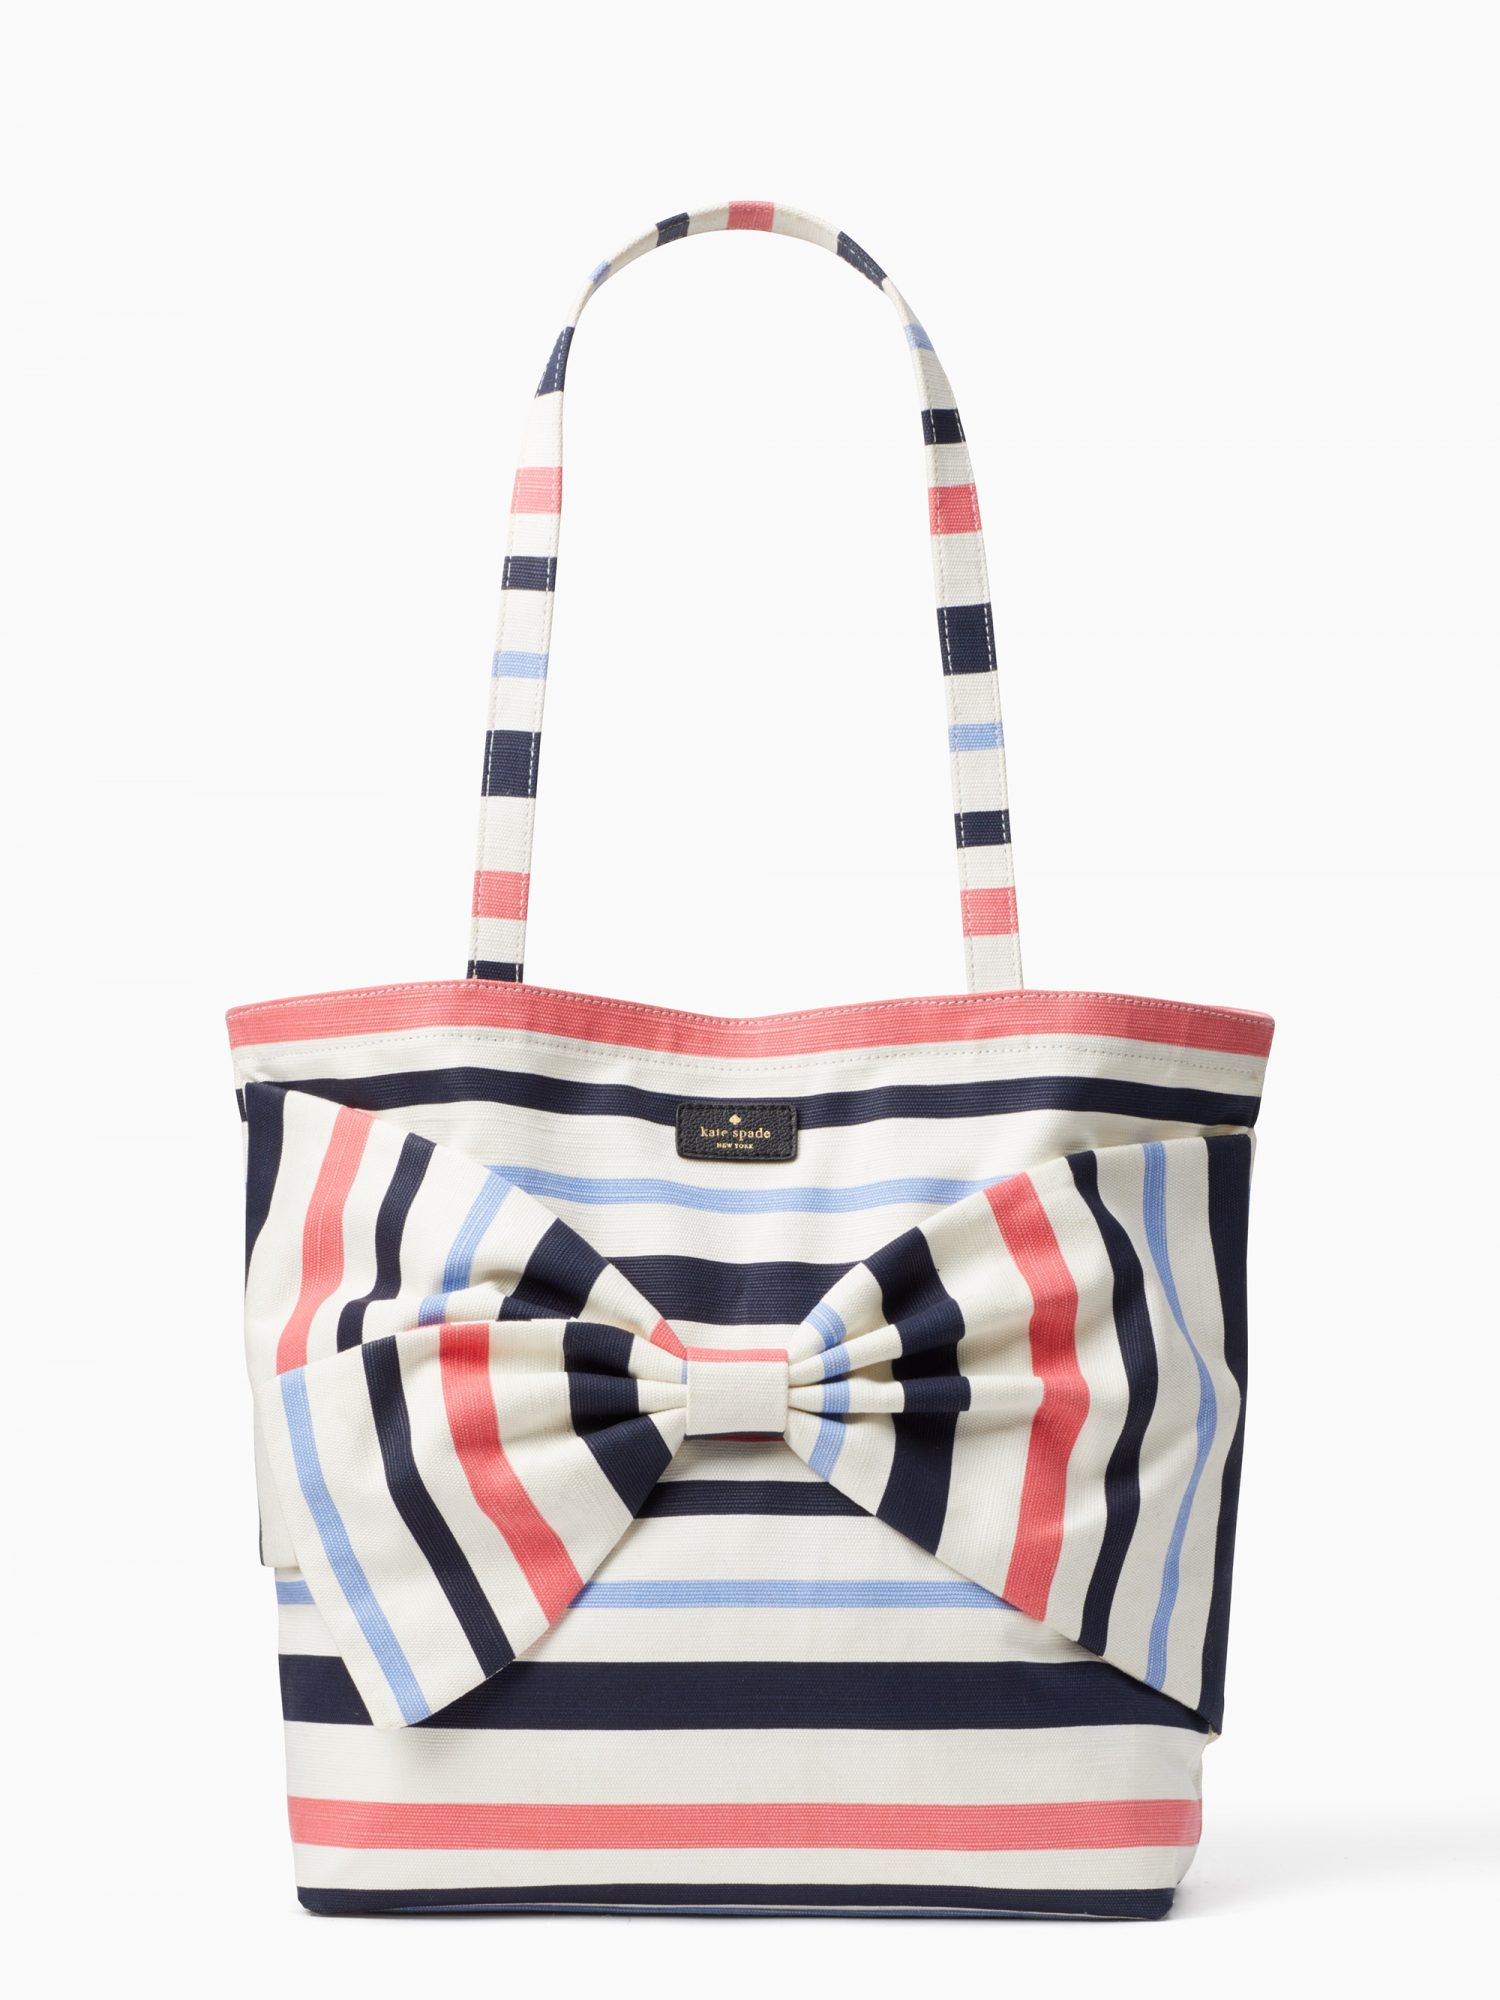 KATE SPADE on purpose canvas tote, stripe front view